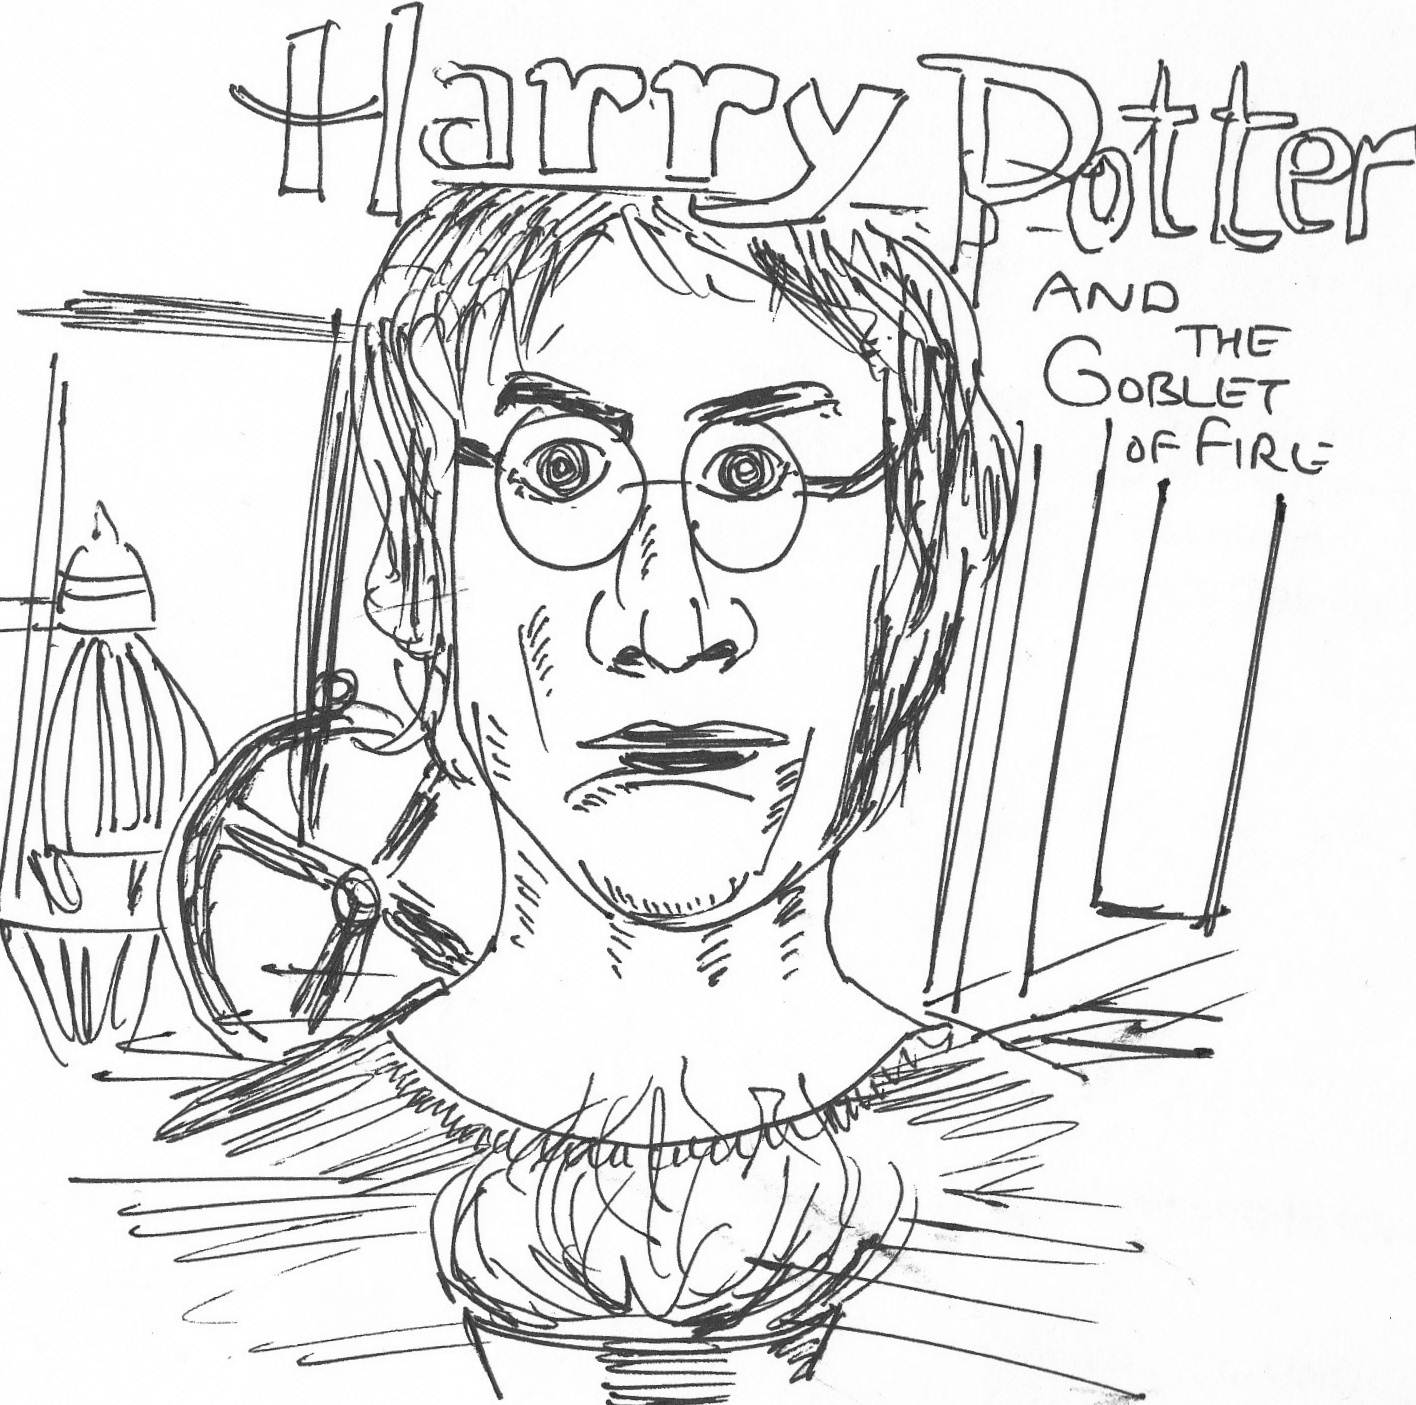 CHUMMADRAW: Harry Potter and the Goblet of Fire